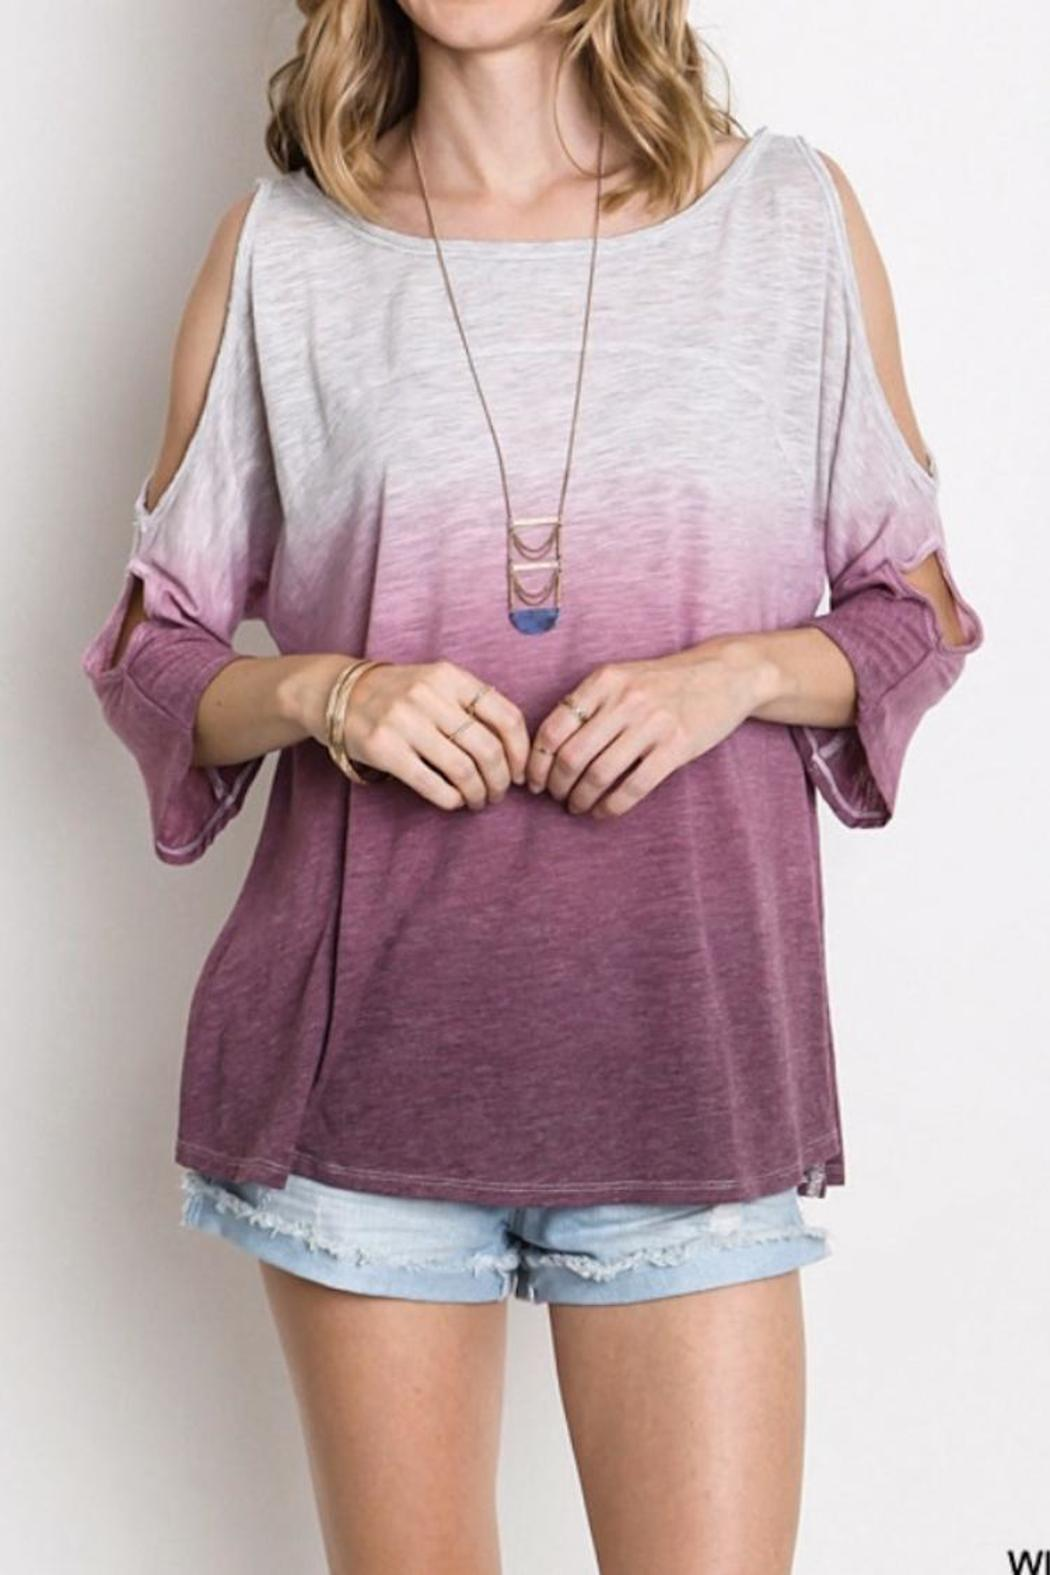 ea3d7501a8860 Umgee USA Cold Shoulder Top from Georgia by The Peach Pistol ...